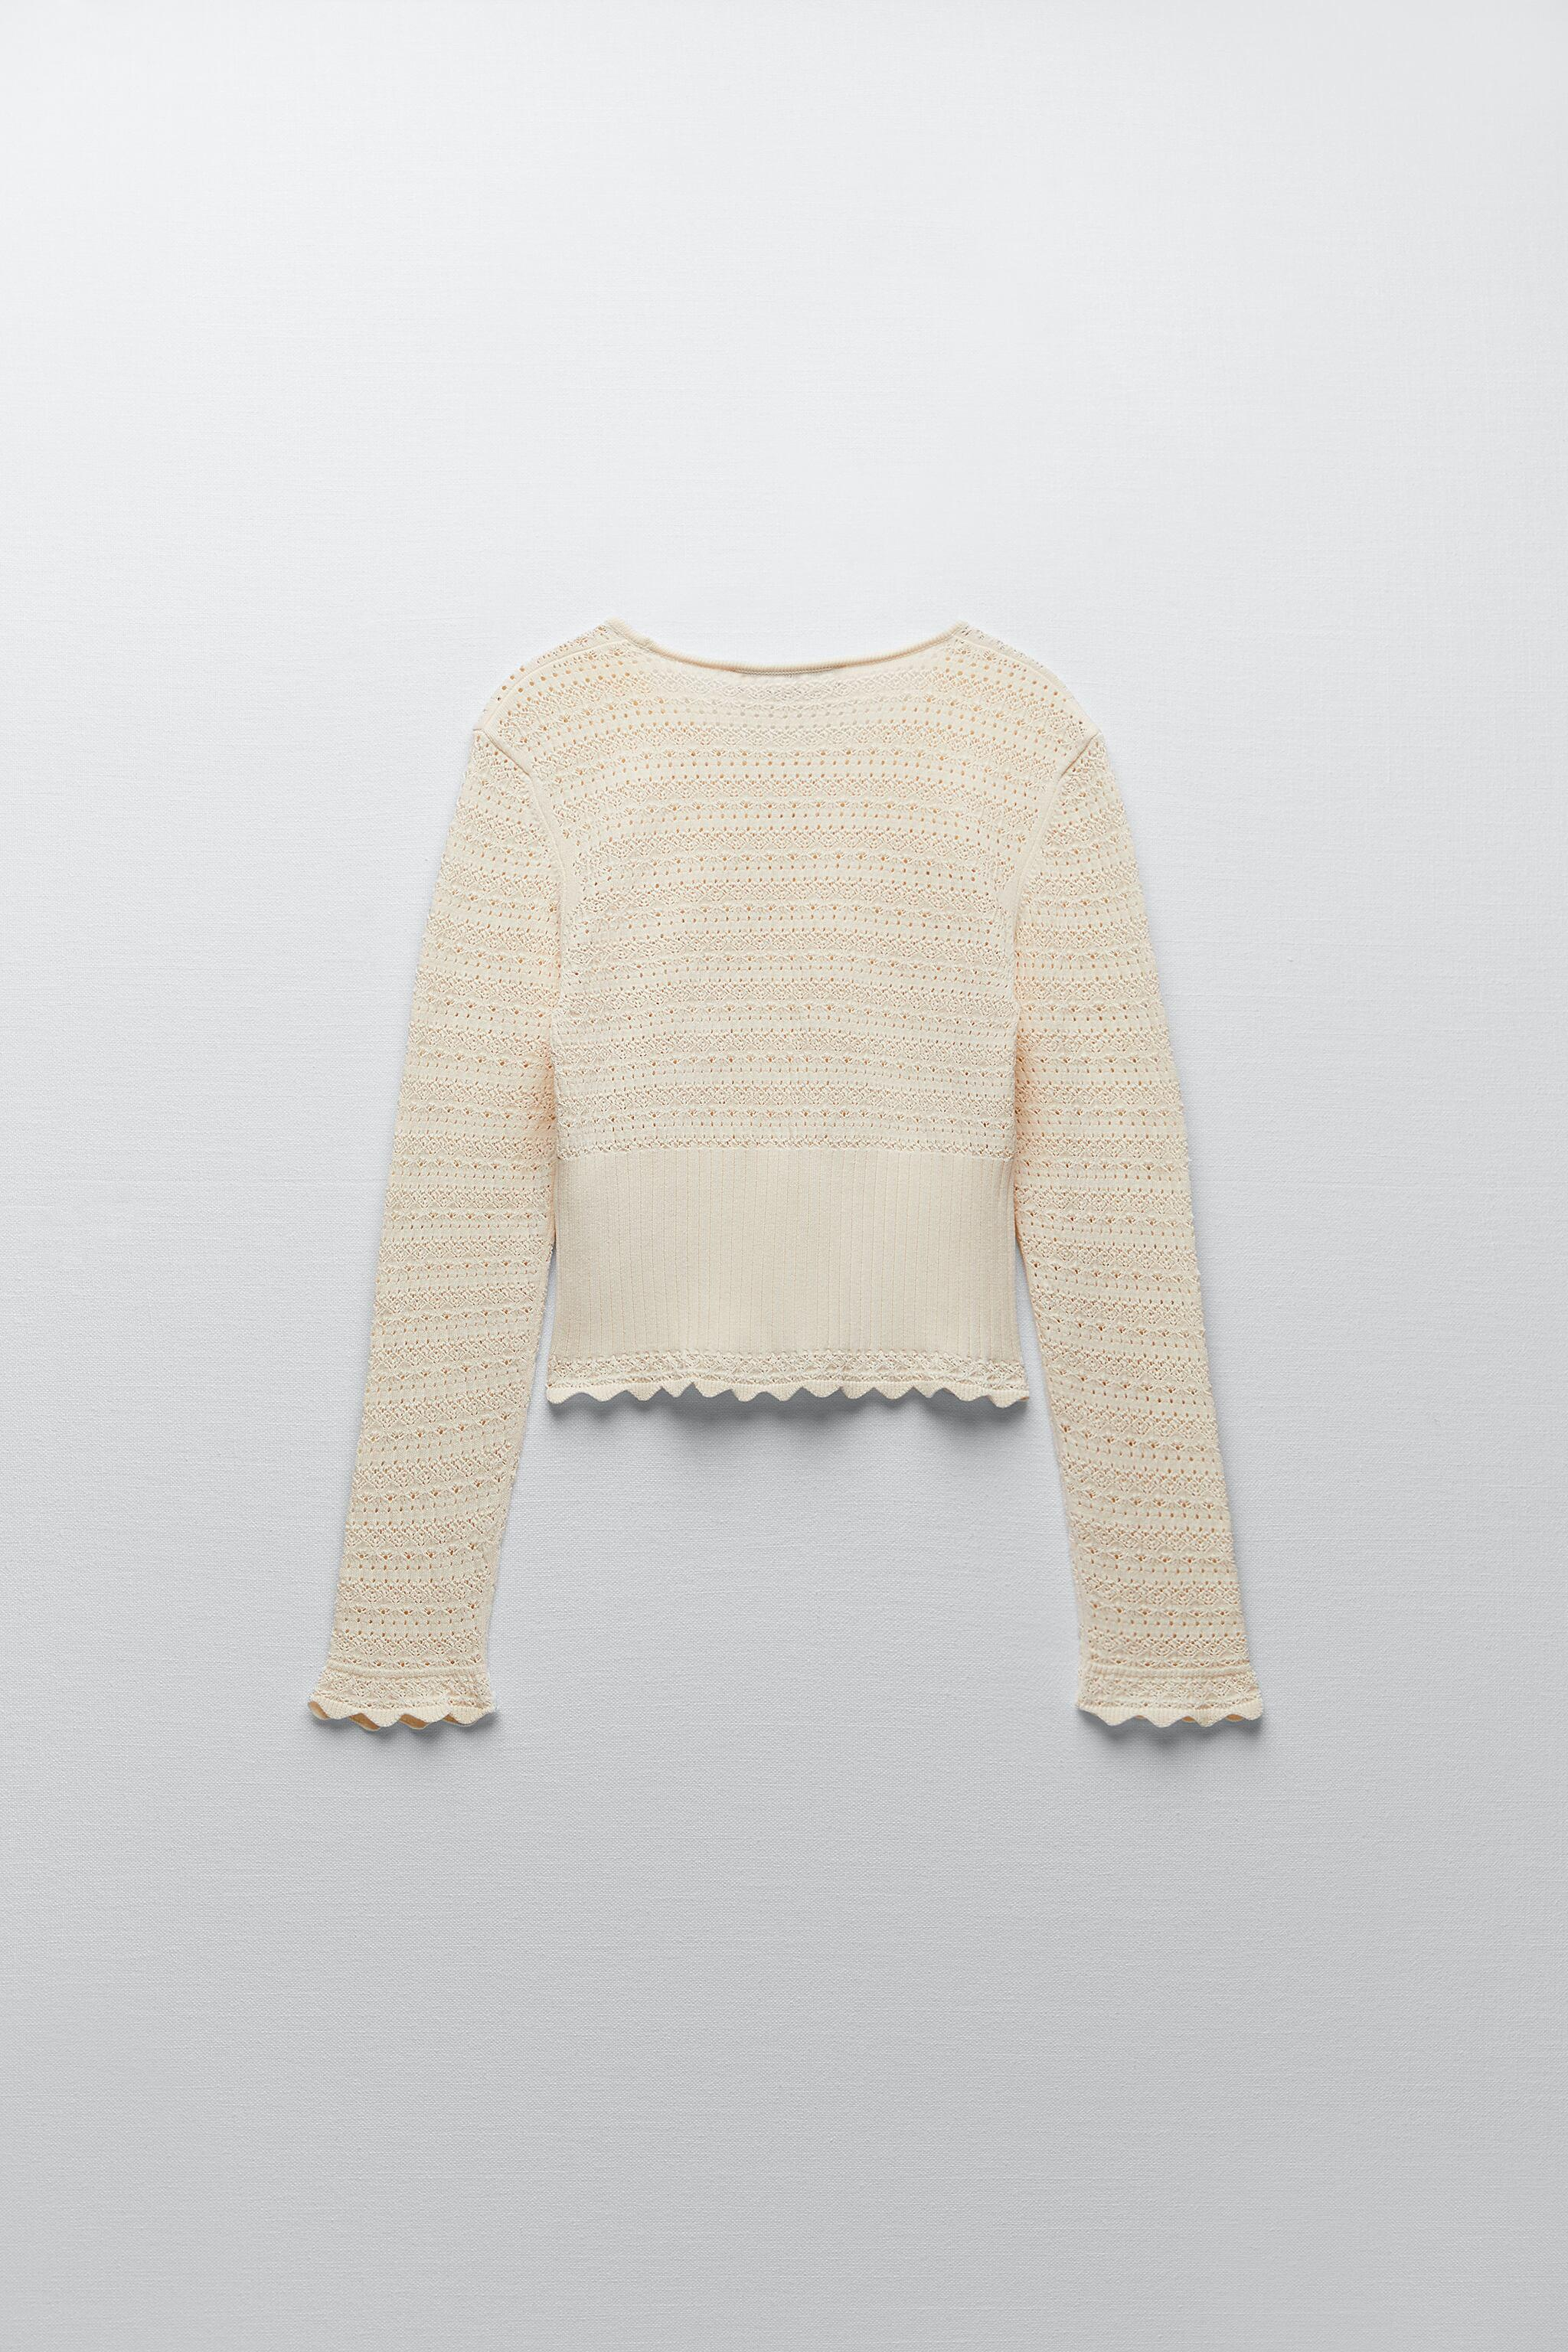 POINTELLE KNIT TOP 4